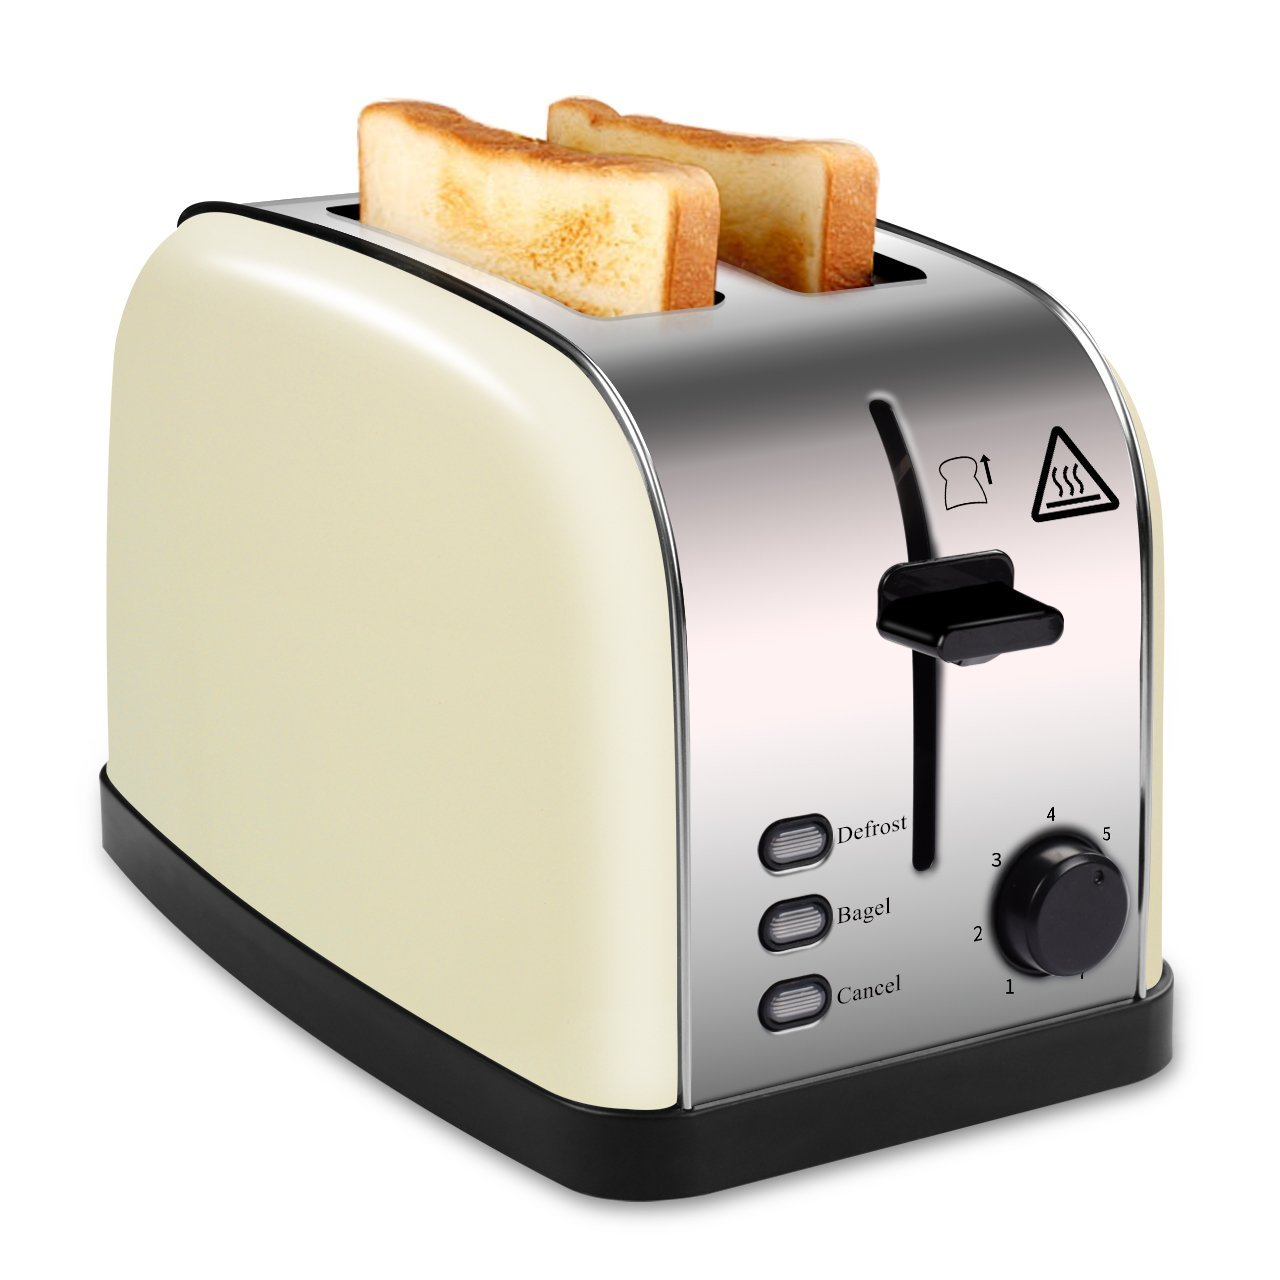 MADETEC 2 Slice Wide Slot Toaster for Bread Bagel, Brushed Stainless Steel Toaster with Removable Crumb Tray,High Lift Lever, Defrost, Bagels and 7 Shade Setting (Beige)